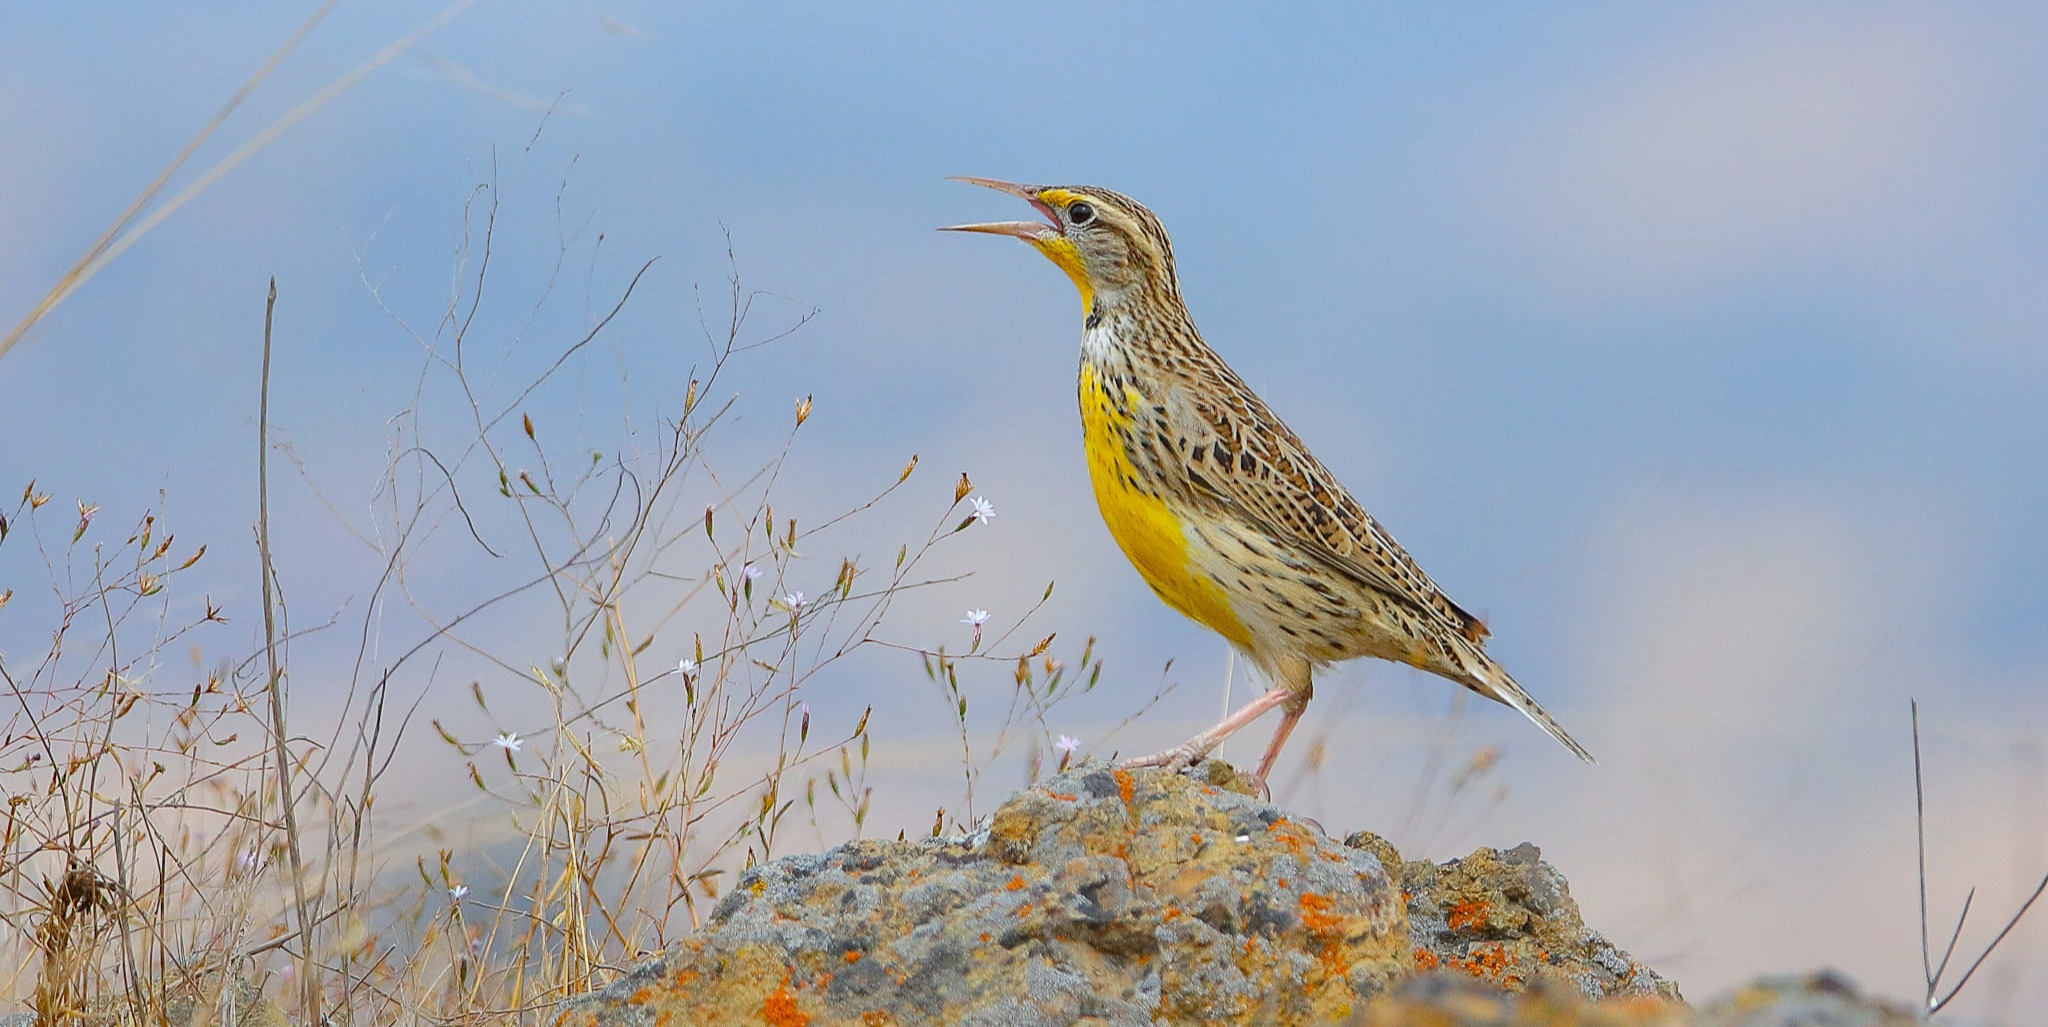 Meadowlark singing on top of rock